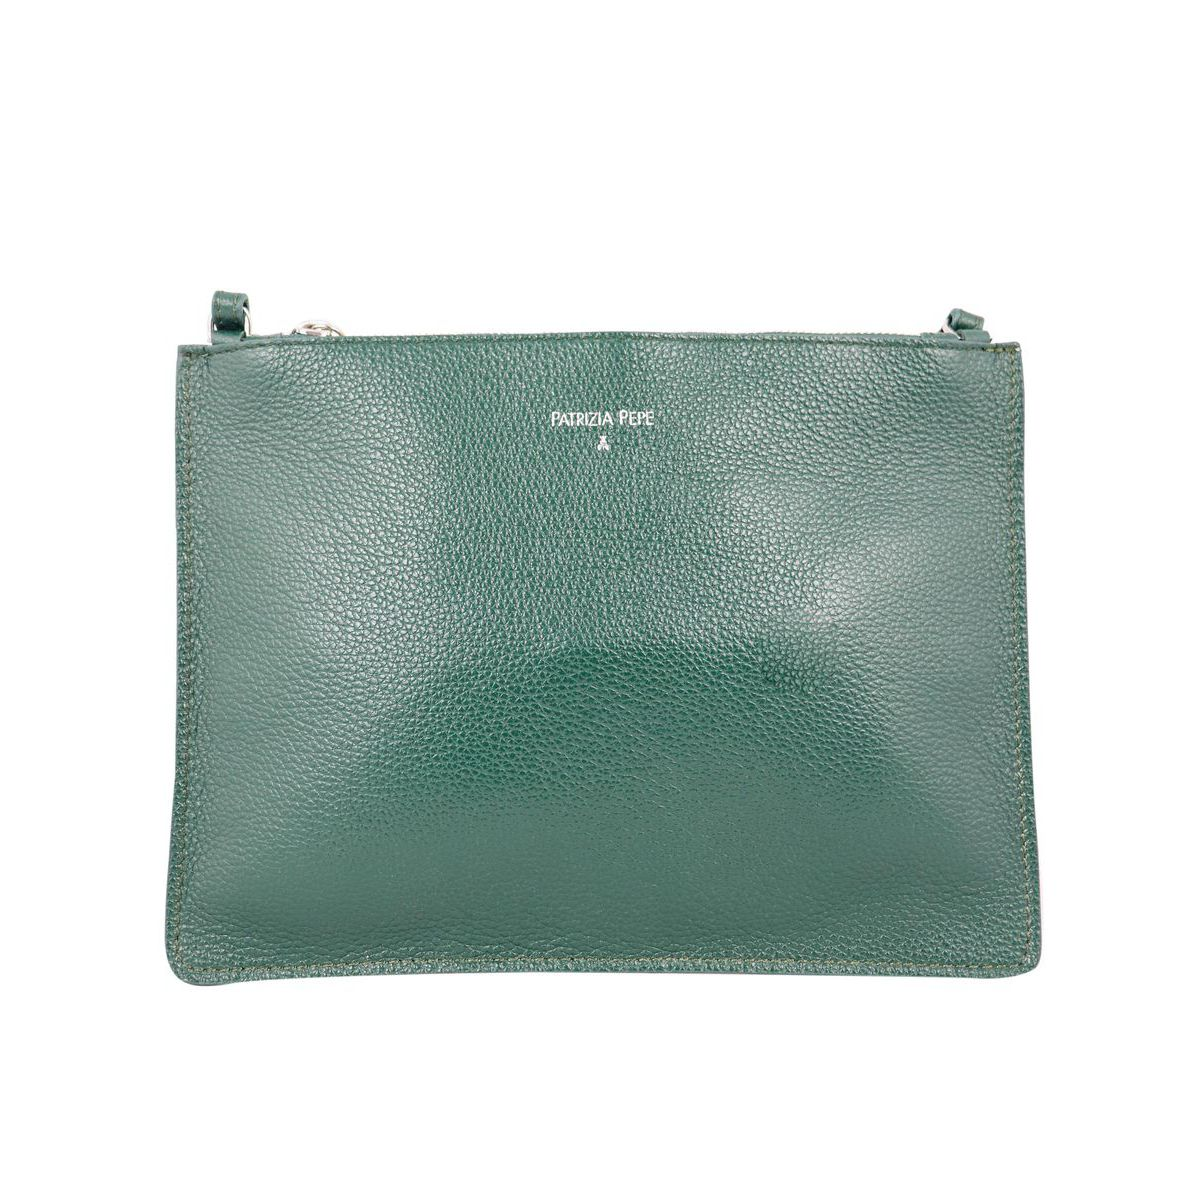 Flat shoulder bag in textured leather Green Patrizia Pepe